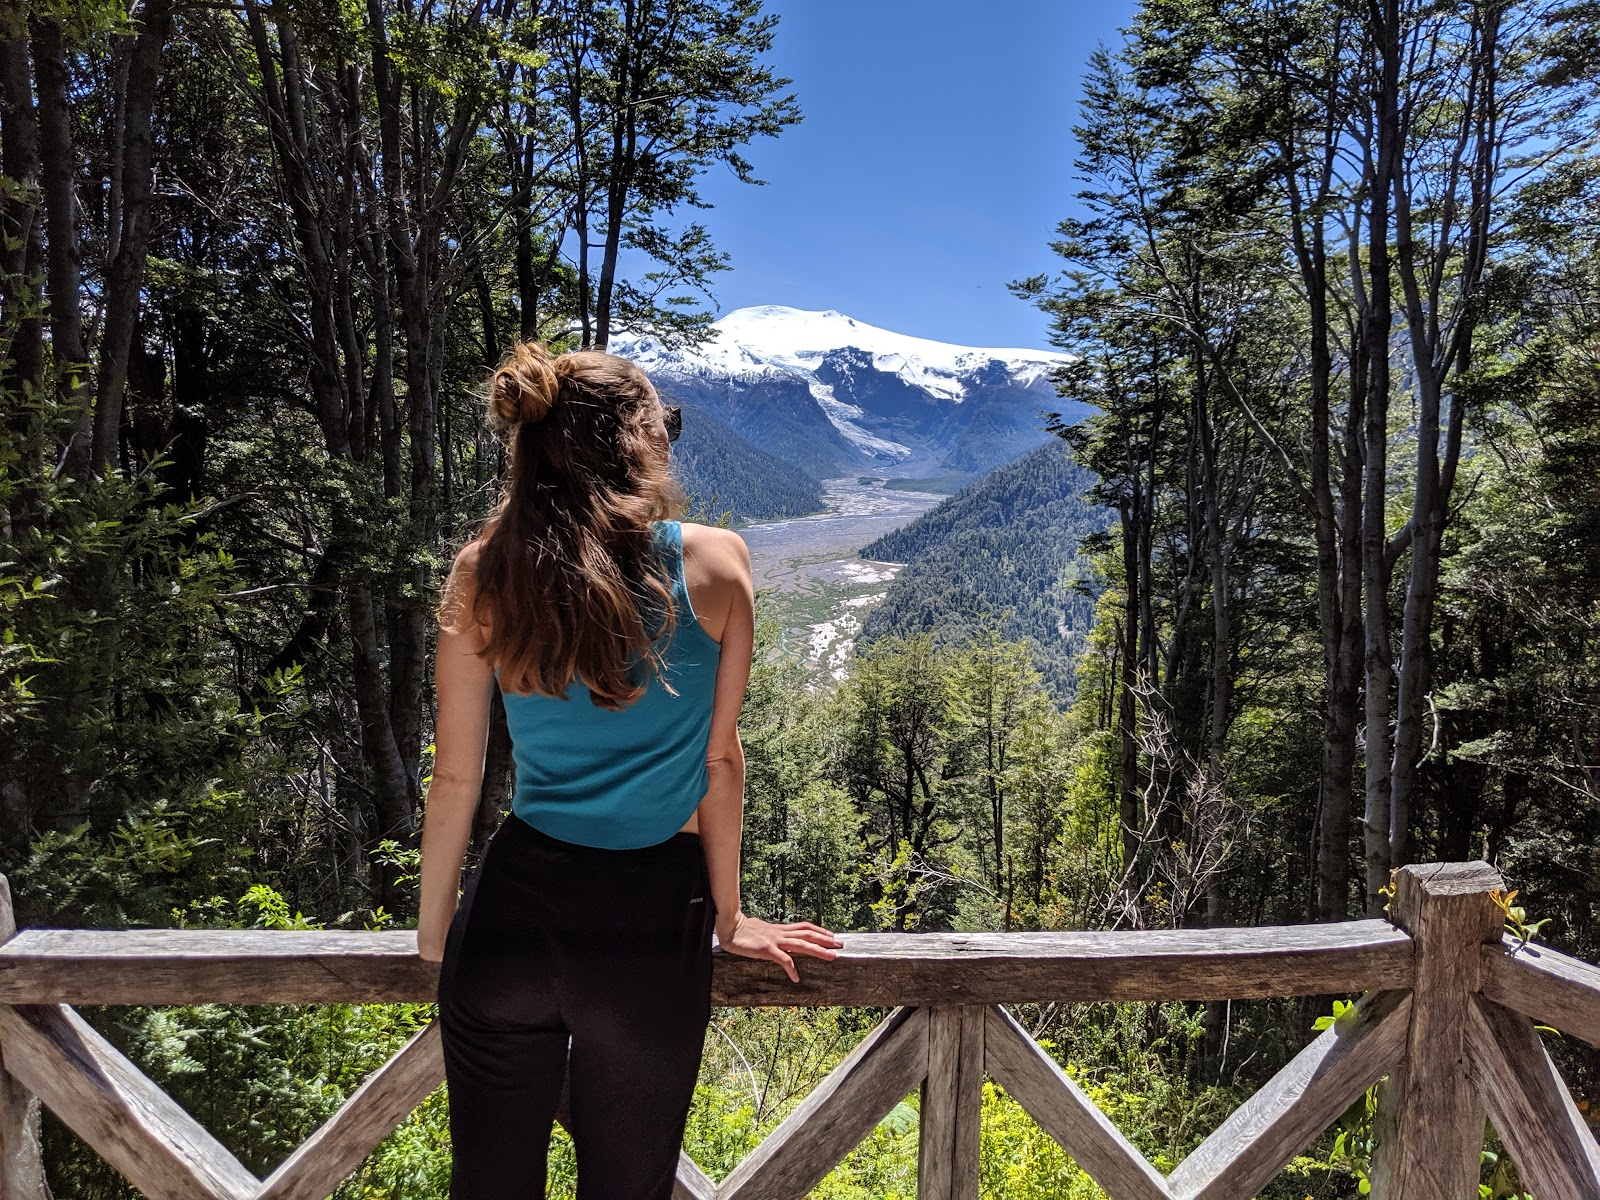 10 day road trip on the Carretera Austral - Mirador hike viewpoint of the Michinmahuida Glacier